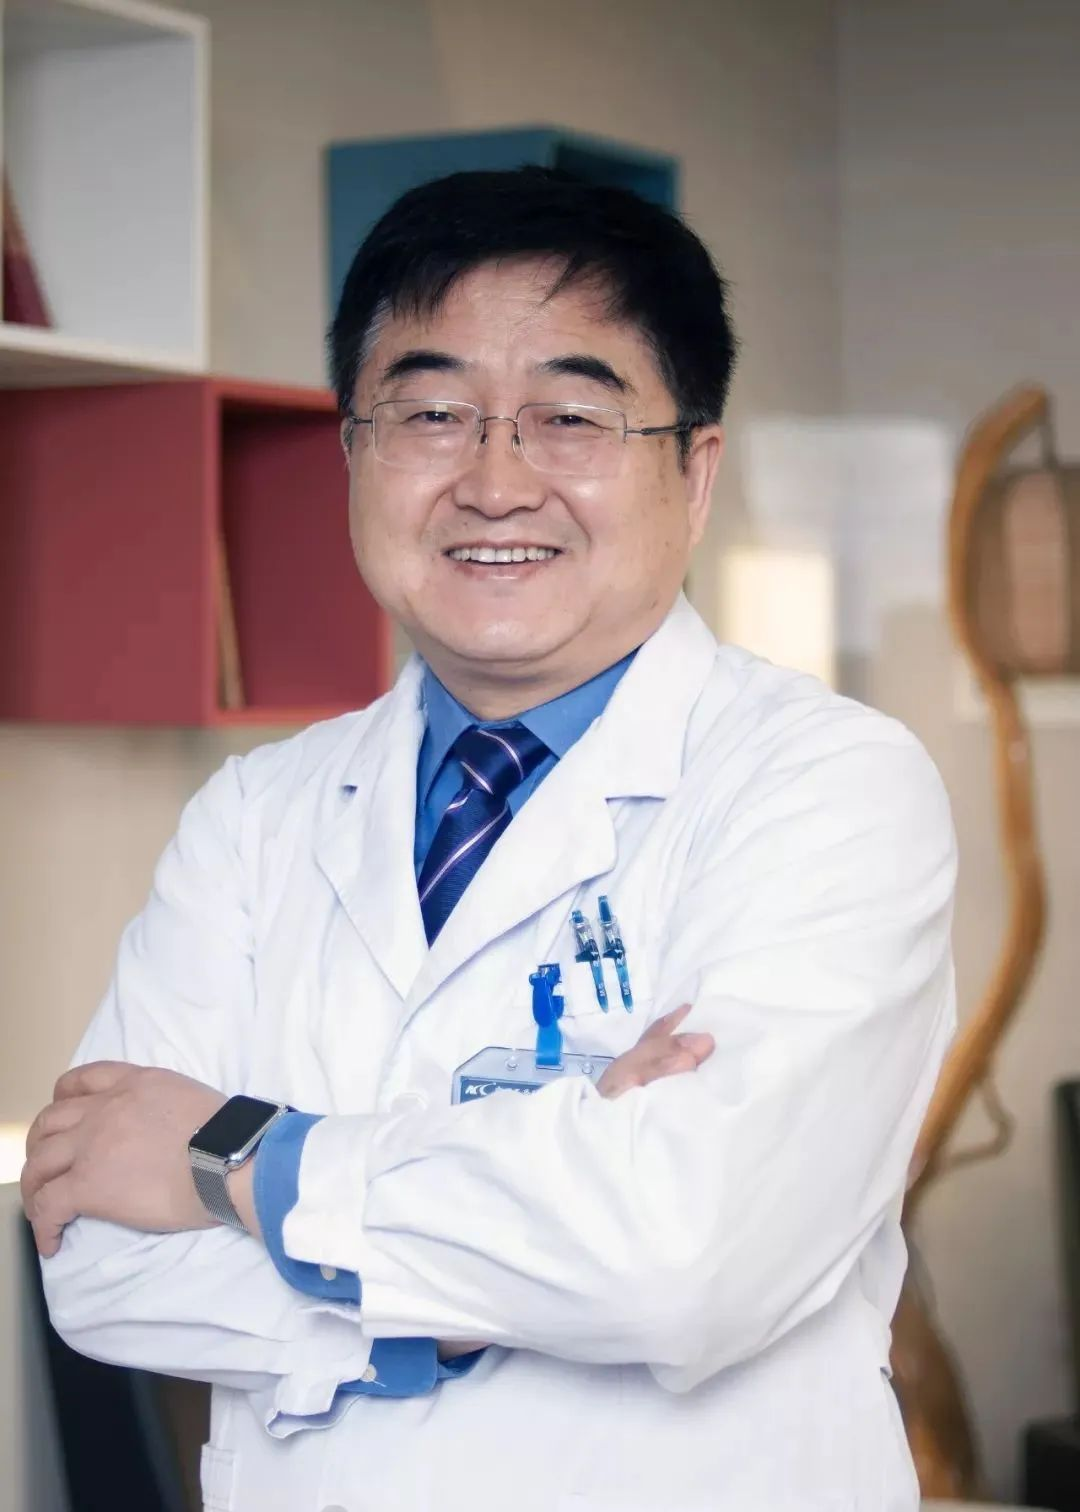 My Chinese Father, Doctor Li